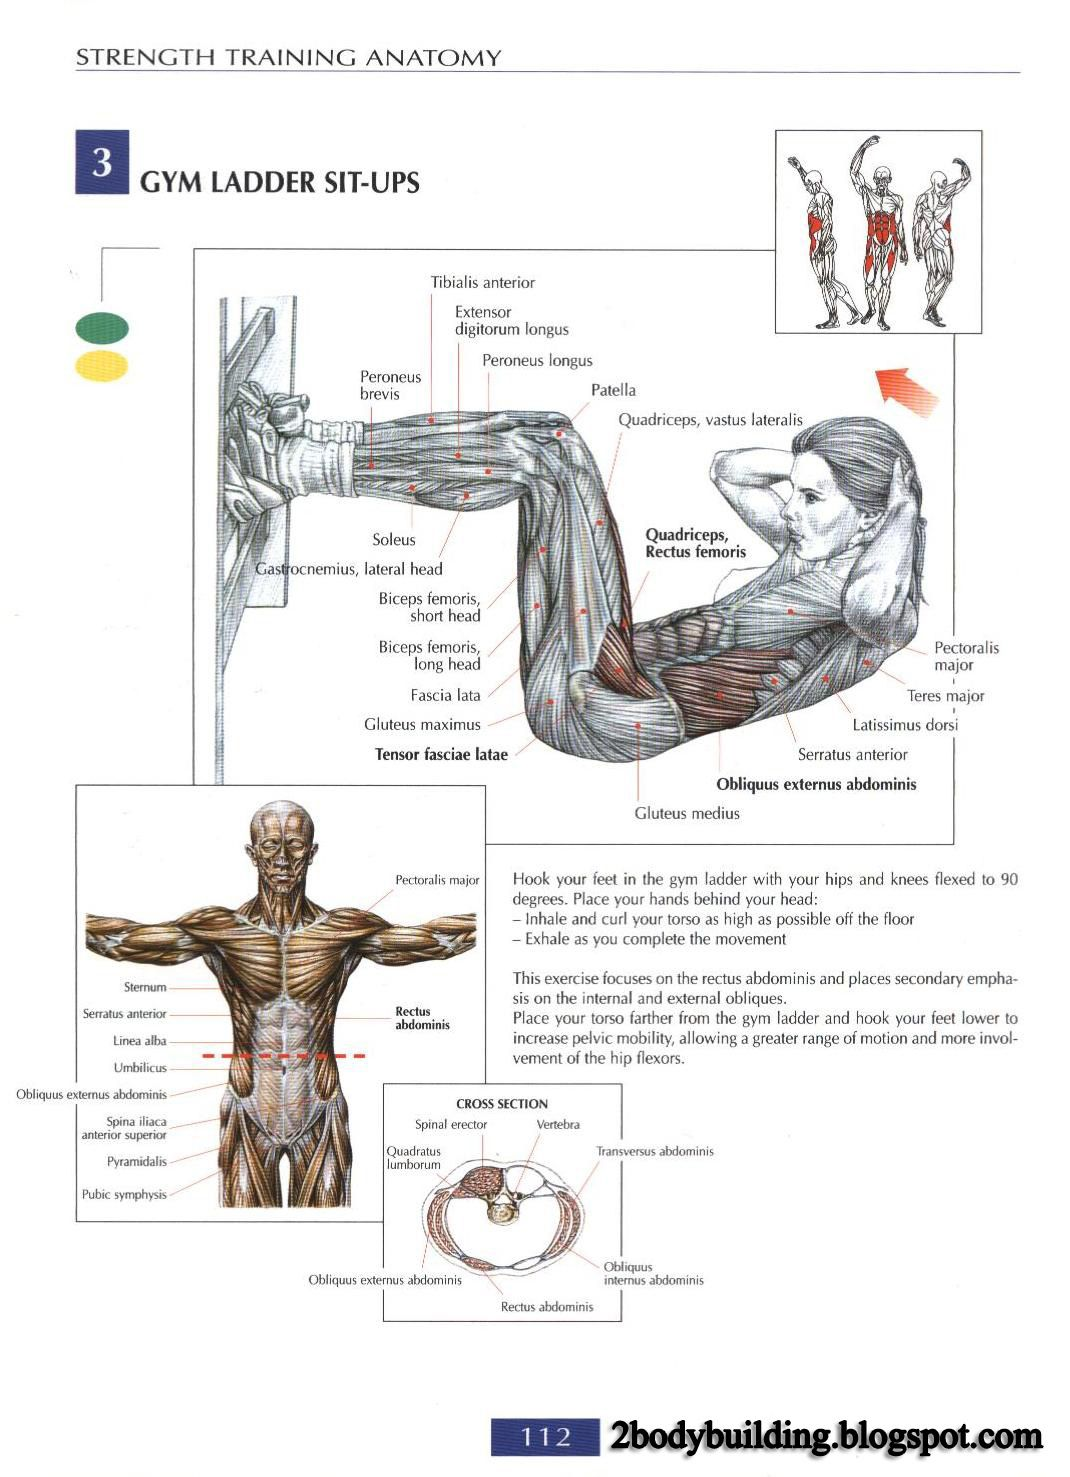 Pin by Pierre Khoury on Abdominal | Pinterest